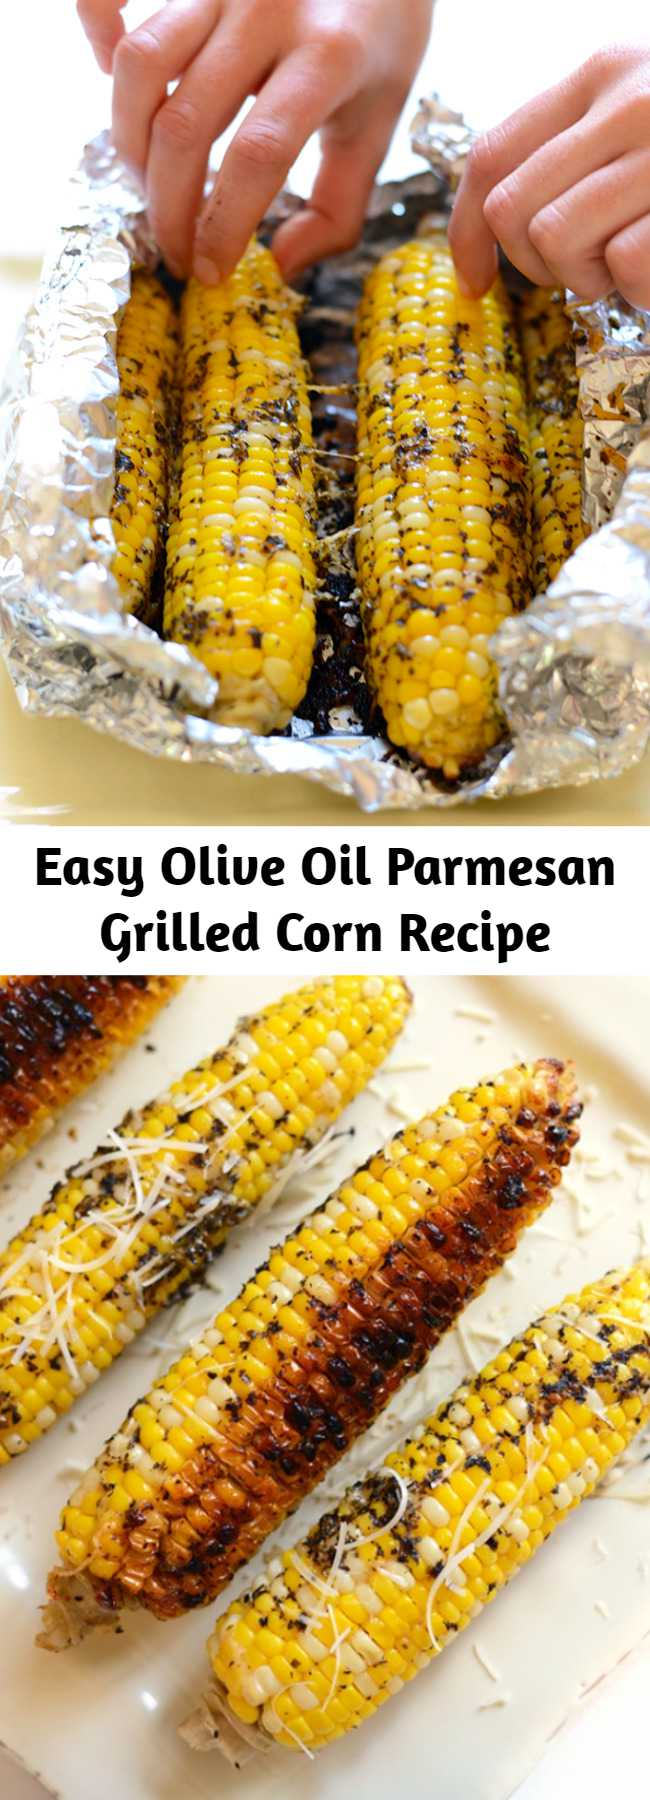 Easy Olive Oil Parmesan Grilled Corn Recipe - This grilled corn on the cob isn't your average summertime side. Spice up this recipe with olive oil and parmesan cheese for the most flavorful, EASY summertime corn on the cob that can be made right on your grill!